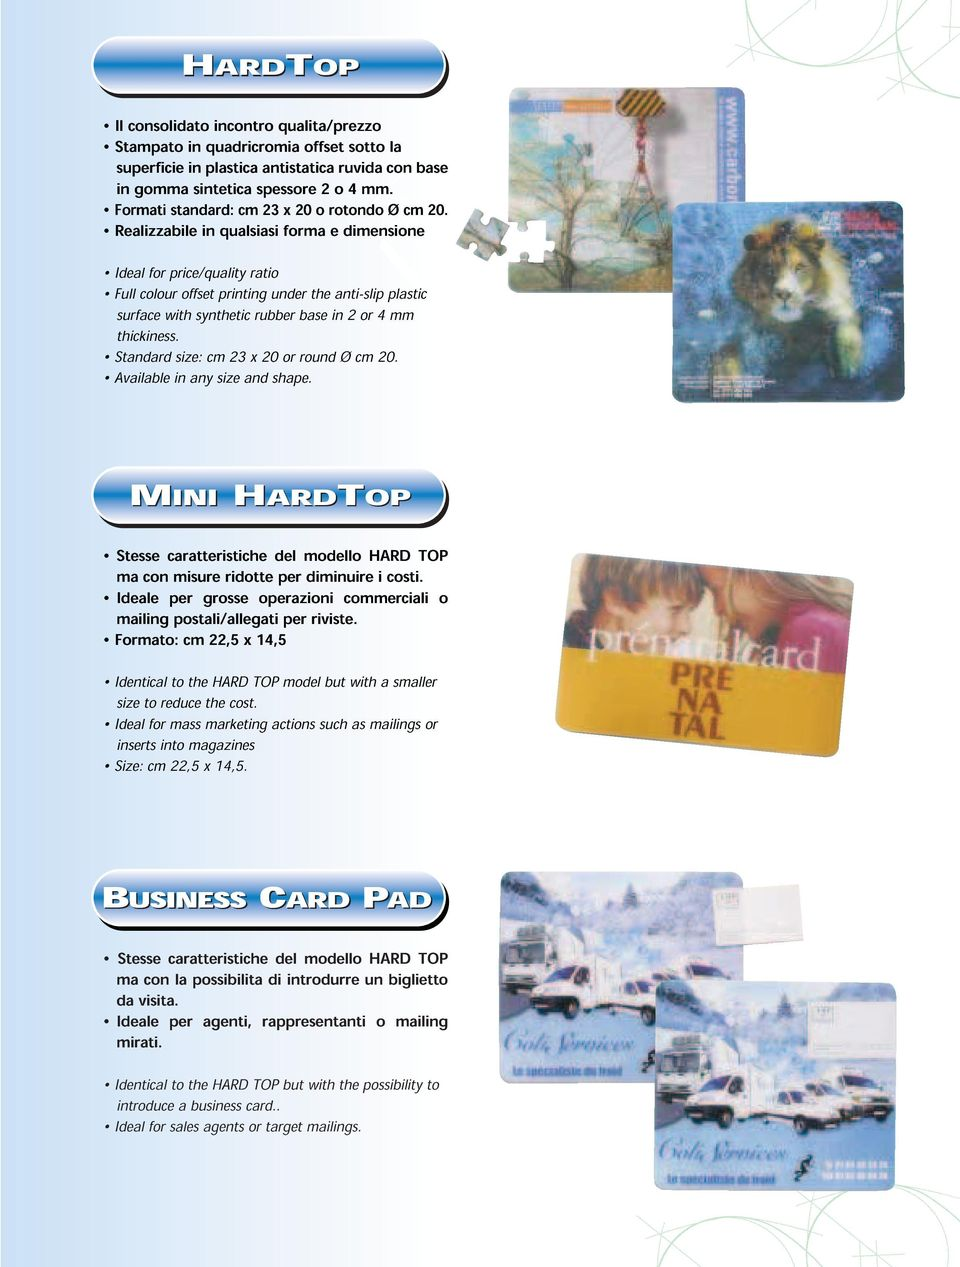 Realizzabile in qualsiasi forma e dimensione Ideal for price/quality ratio Full colour offset printing under the anti-slip plastic surface with synthetic rubber base in 2 or 4 mm thickiness.